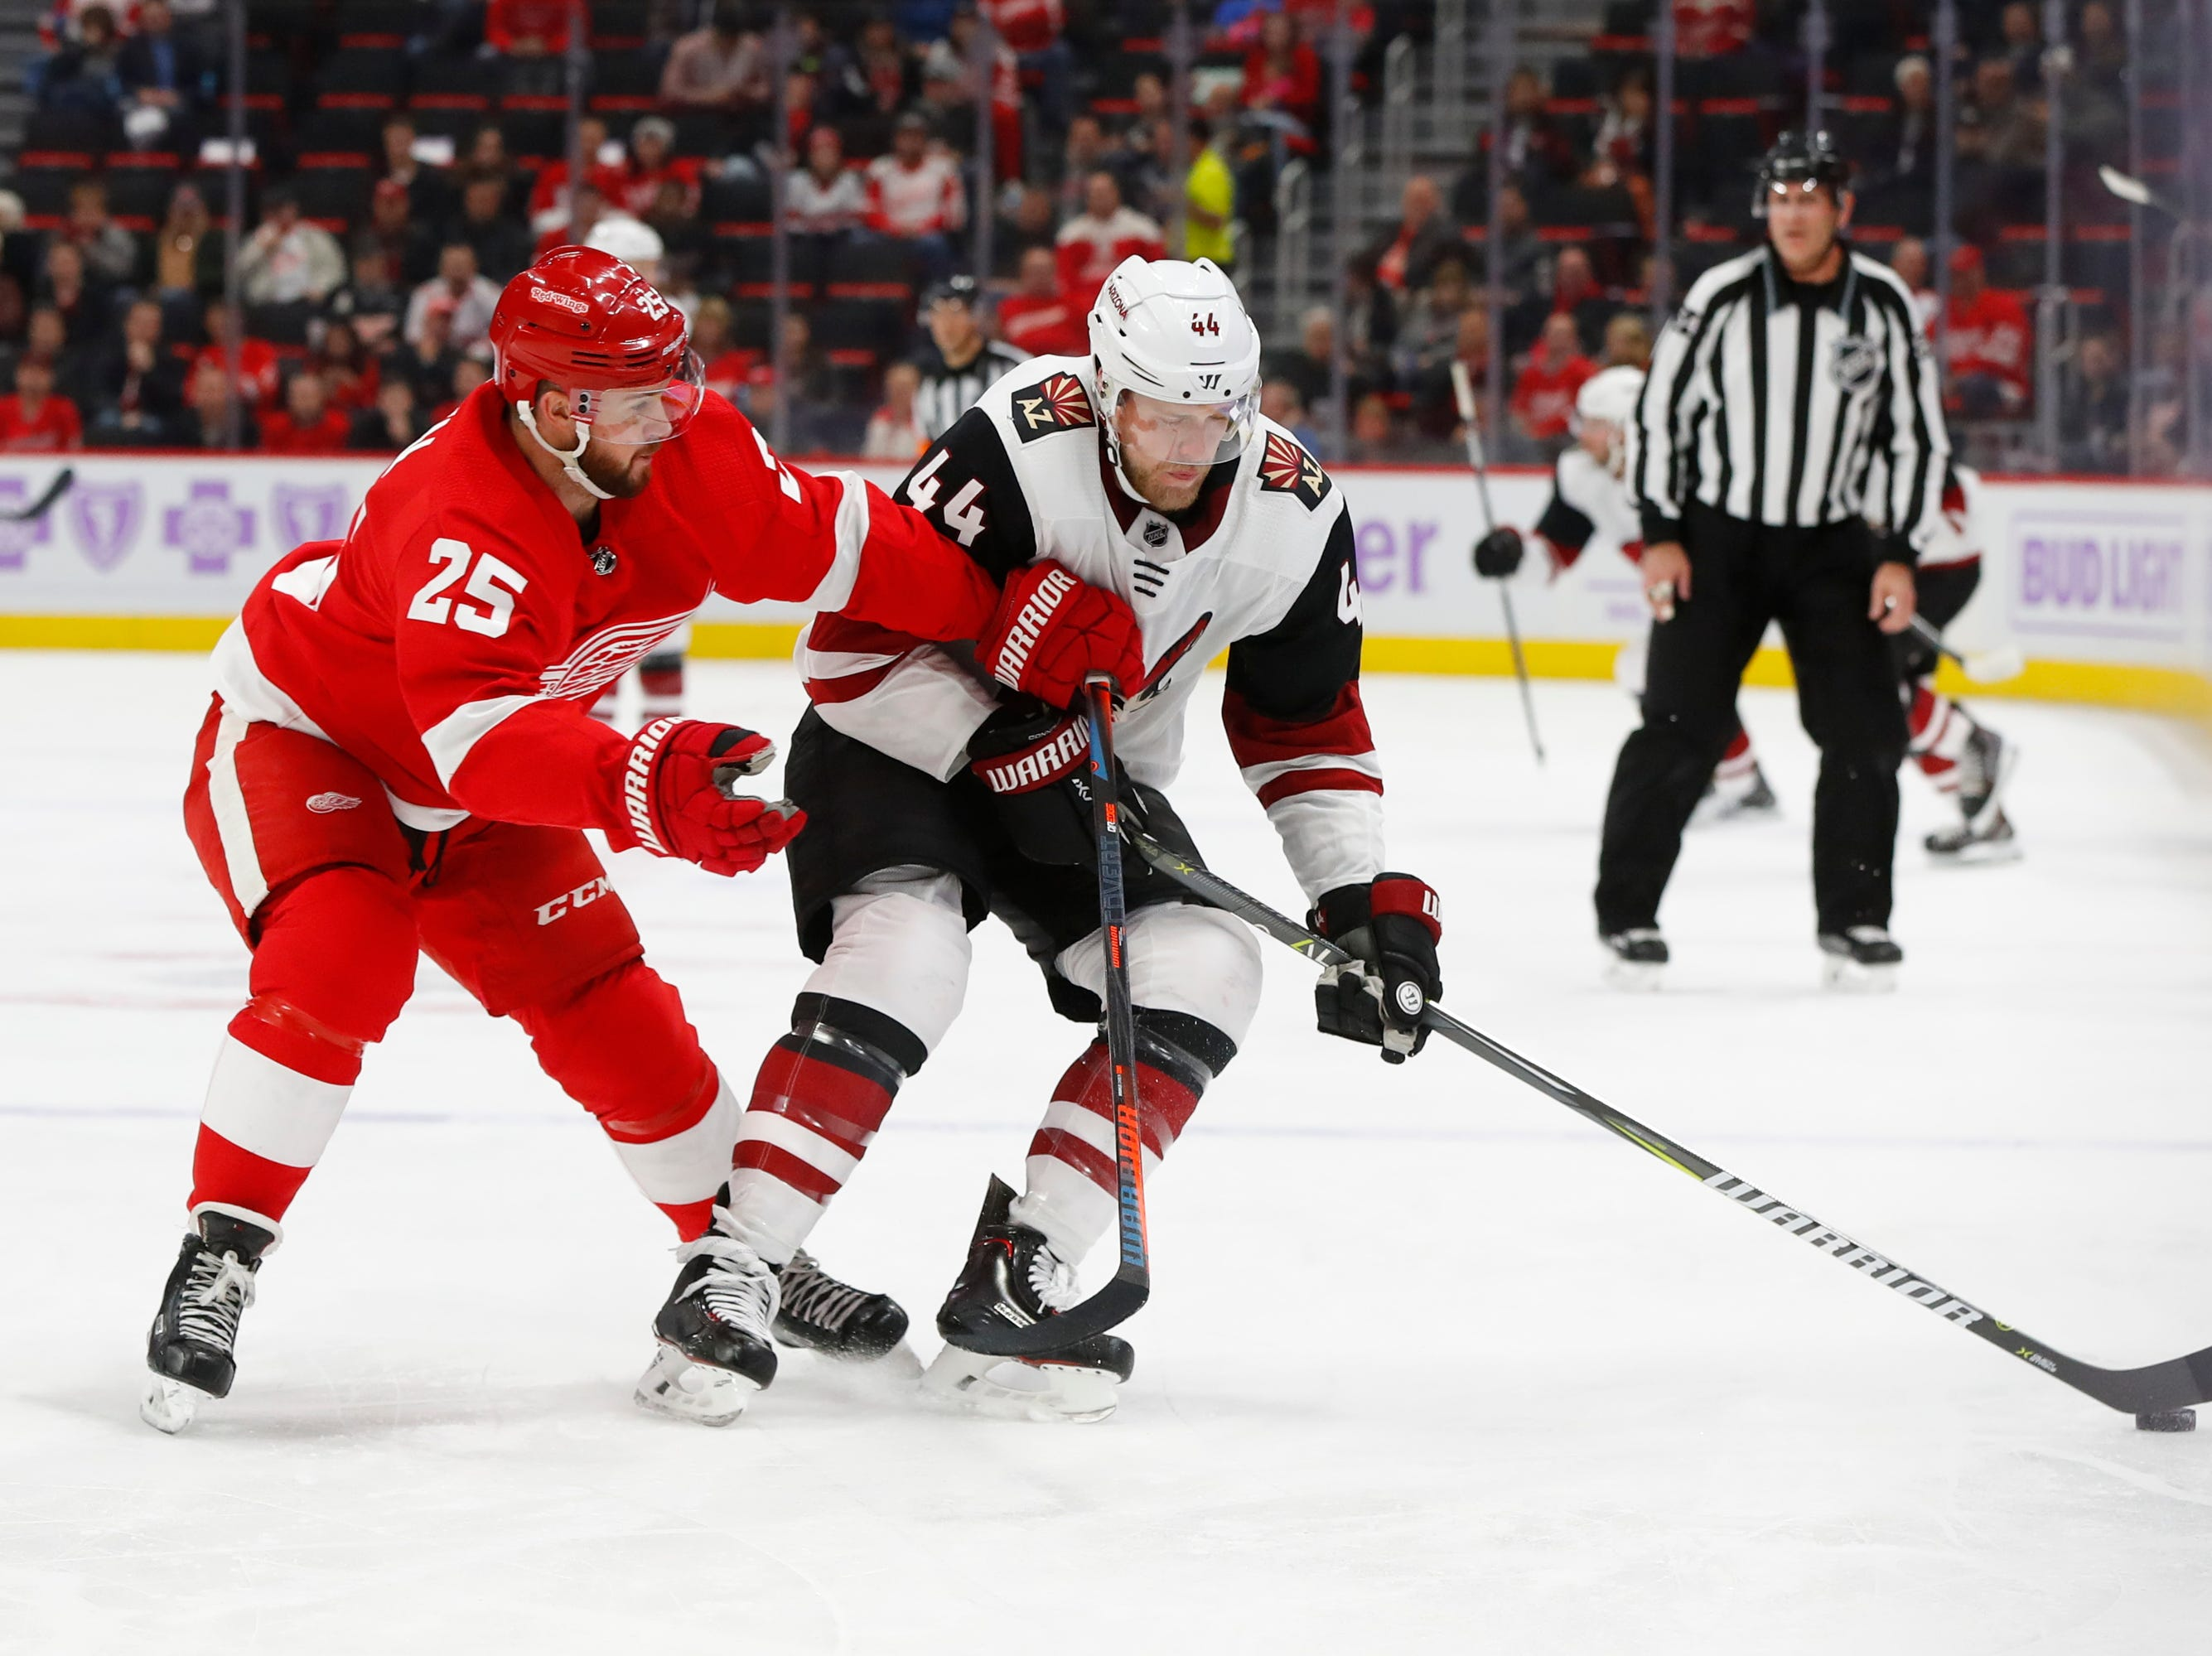 Detroit Red Wings defenseman Mike Green (25) defends Arizona Coyotes defenseman Kevin Connauton (44) in the first period of an NHL hockey game Tuesday, Nov. 13, 2018, in Detroit.